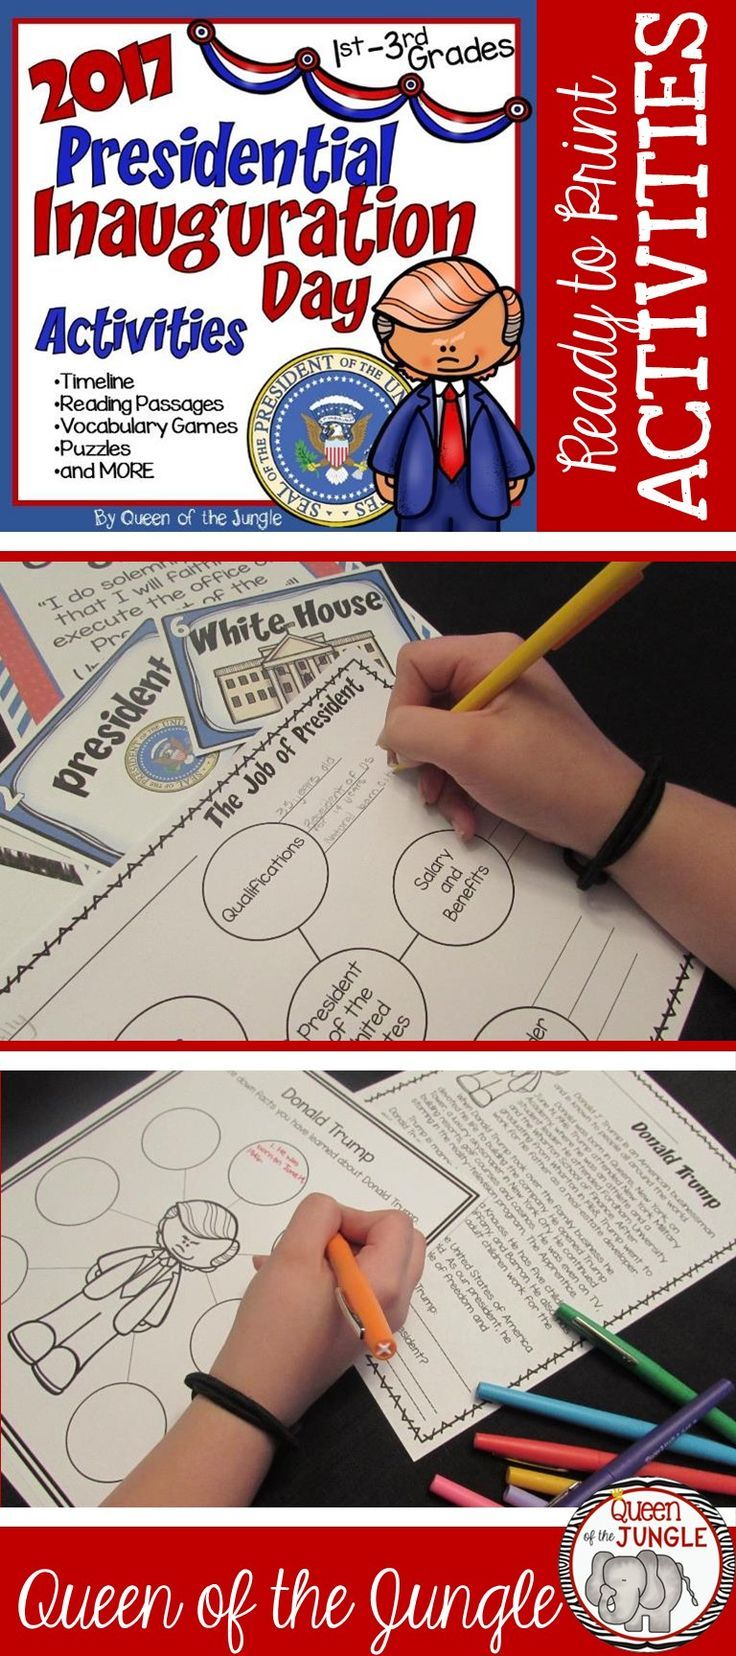 Activities for Inauguration Day 2017 Donald Trump Sworn in for President. #inaugurationday https://www.teacherspayteachers.com/Product/2017-Inauguration-Day-2963679